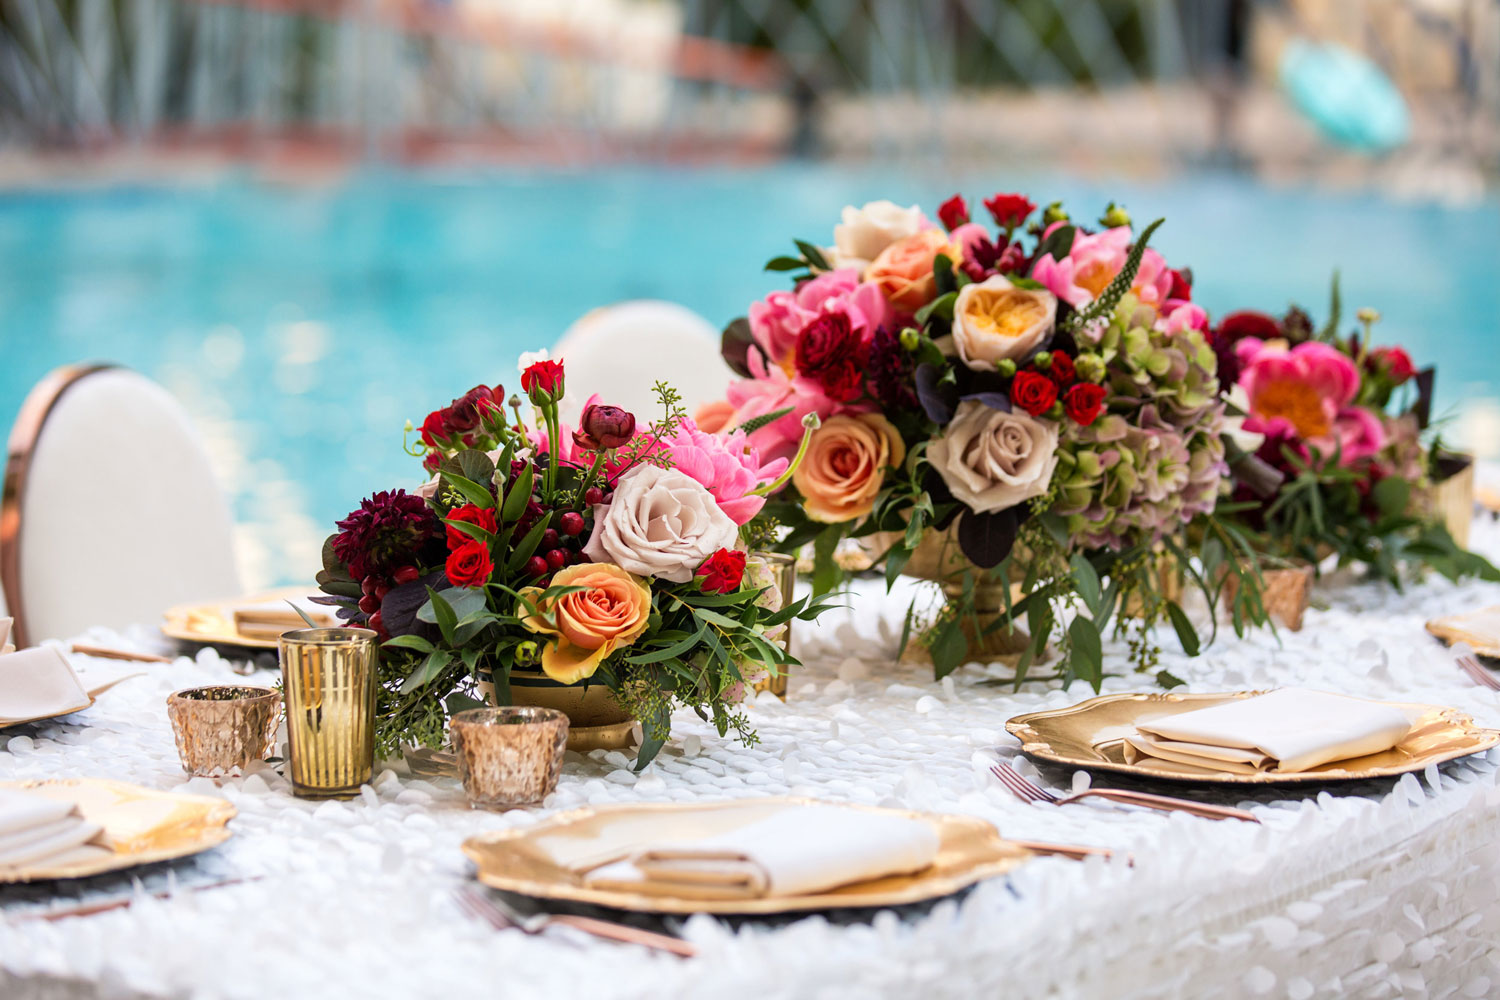 Colorful bold flowers on wedding reception table by pool